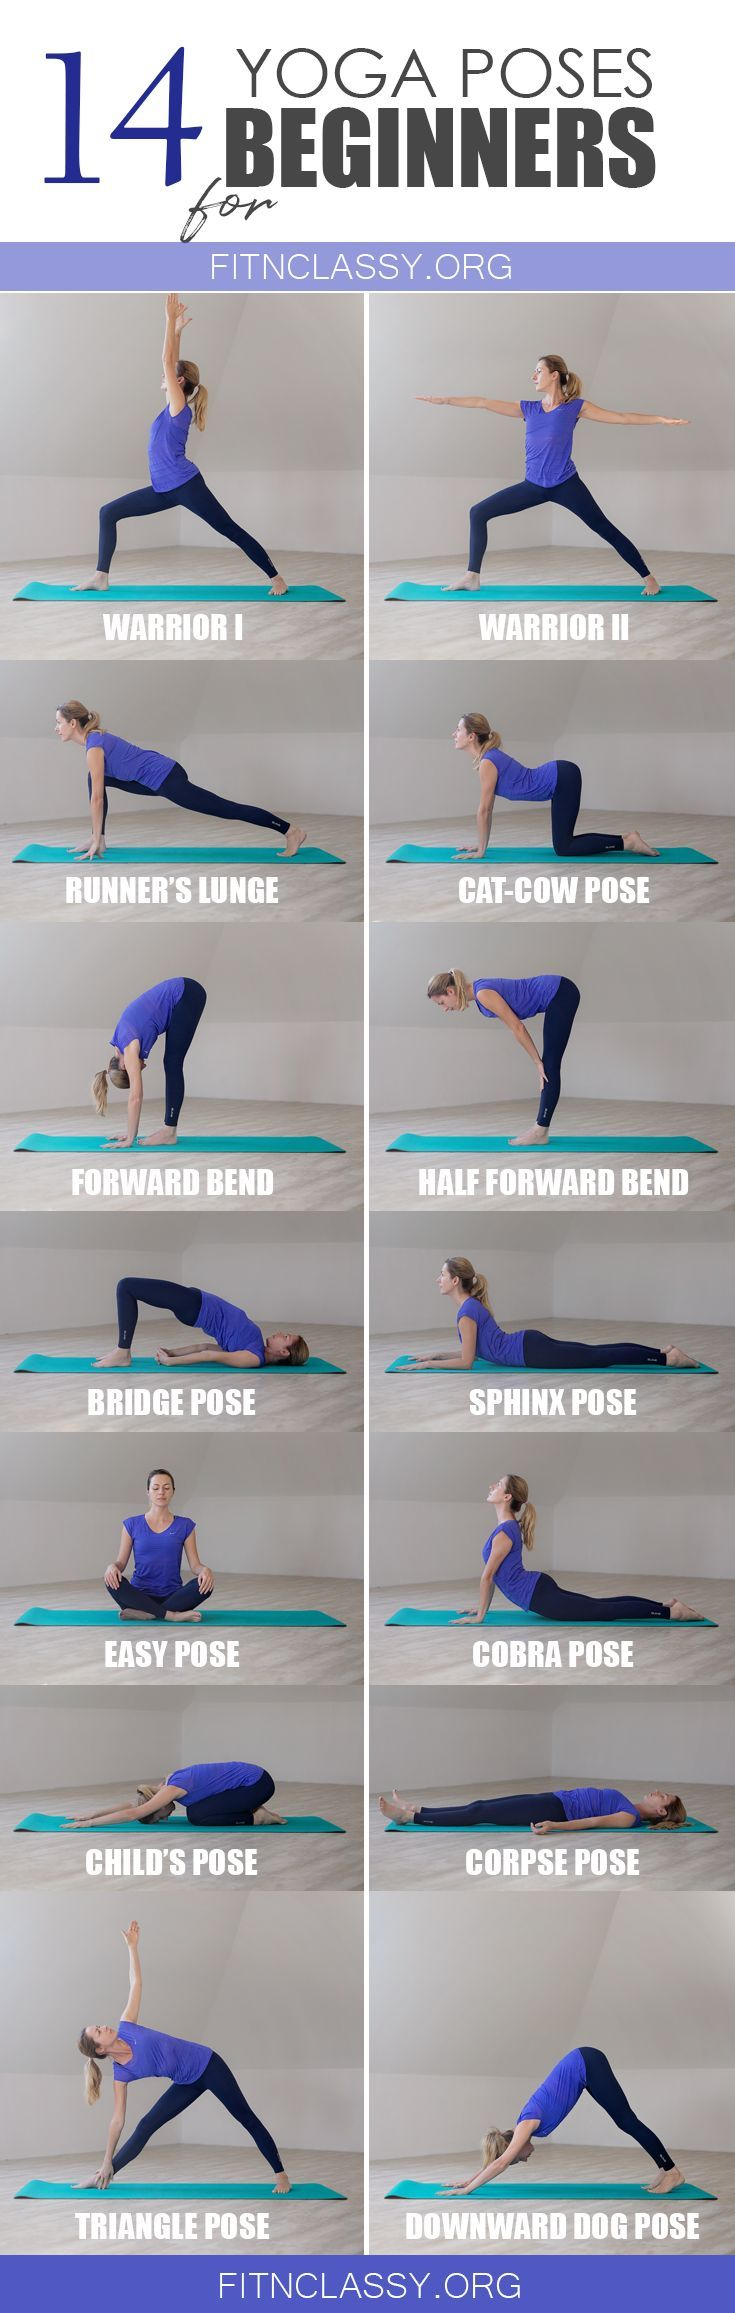 14 Yoga Poses For Beginners Fit Classy Basic Yoga Basic Yoga Poses Yoga Poses